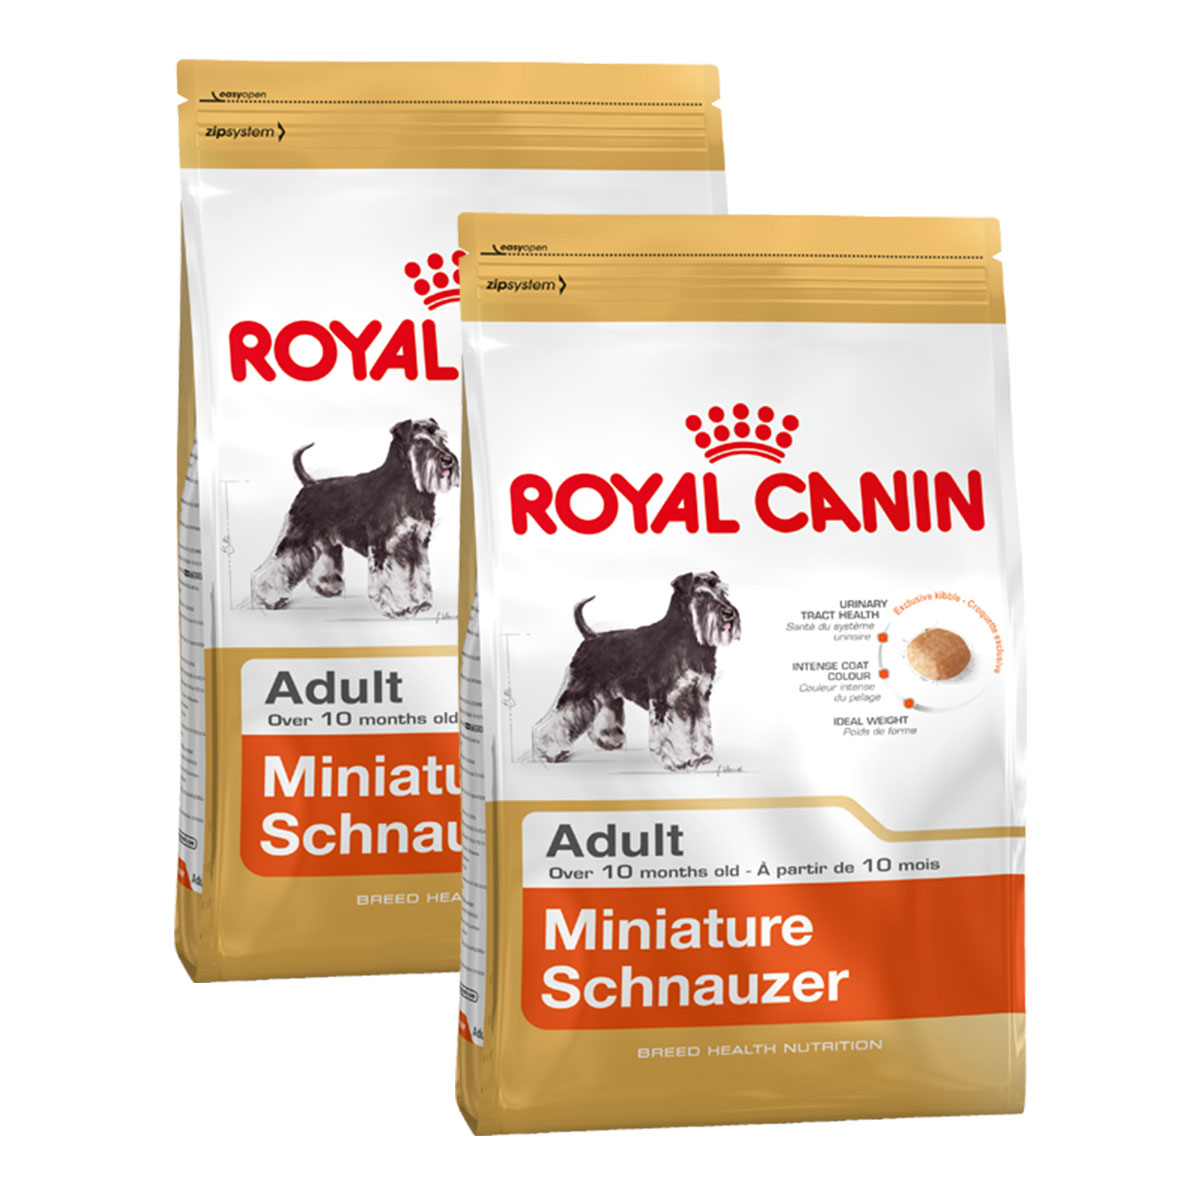 royal canin miniature schnauzer 25 adult kaufen bei zooroyal. Black Bedroom Furniture Sets. Home Design Ideas